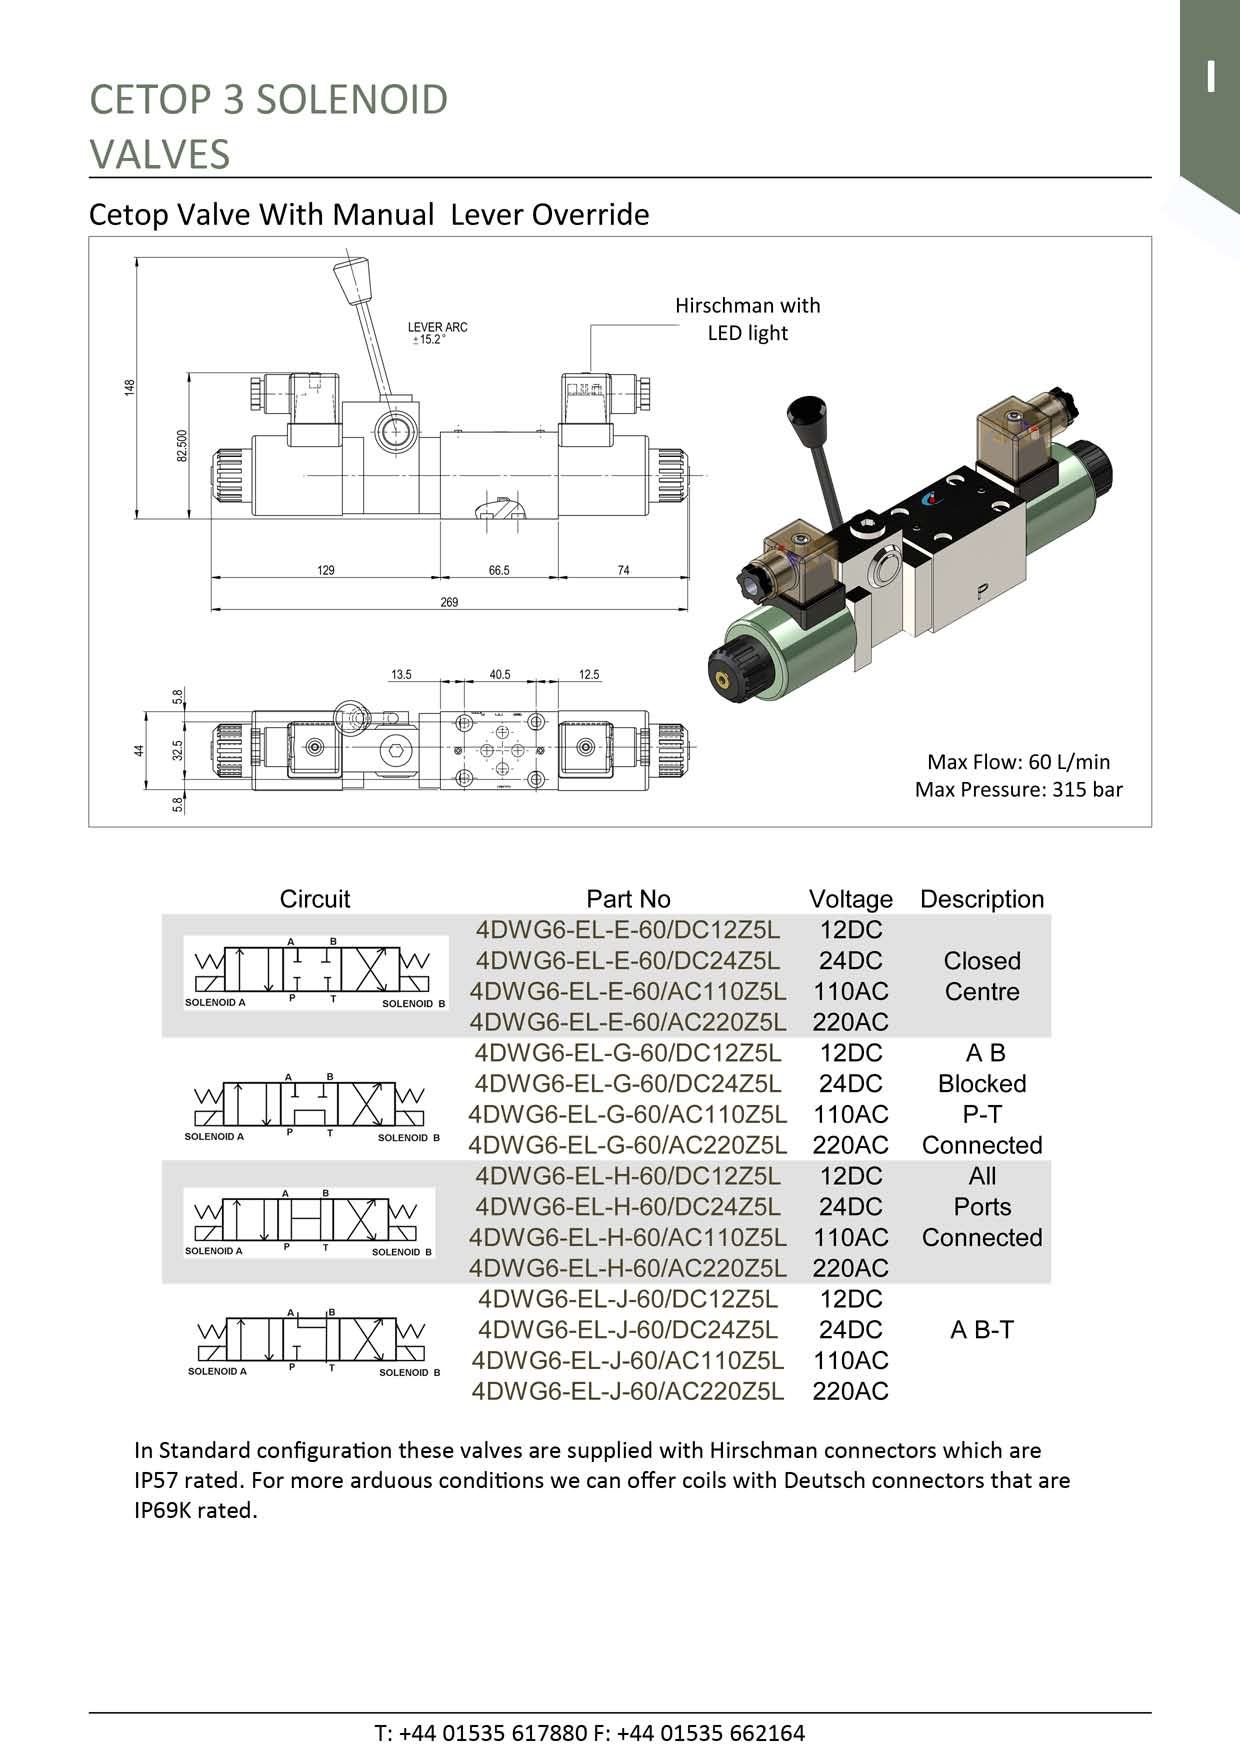 cetop valve with manual override